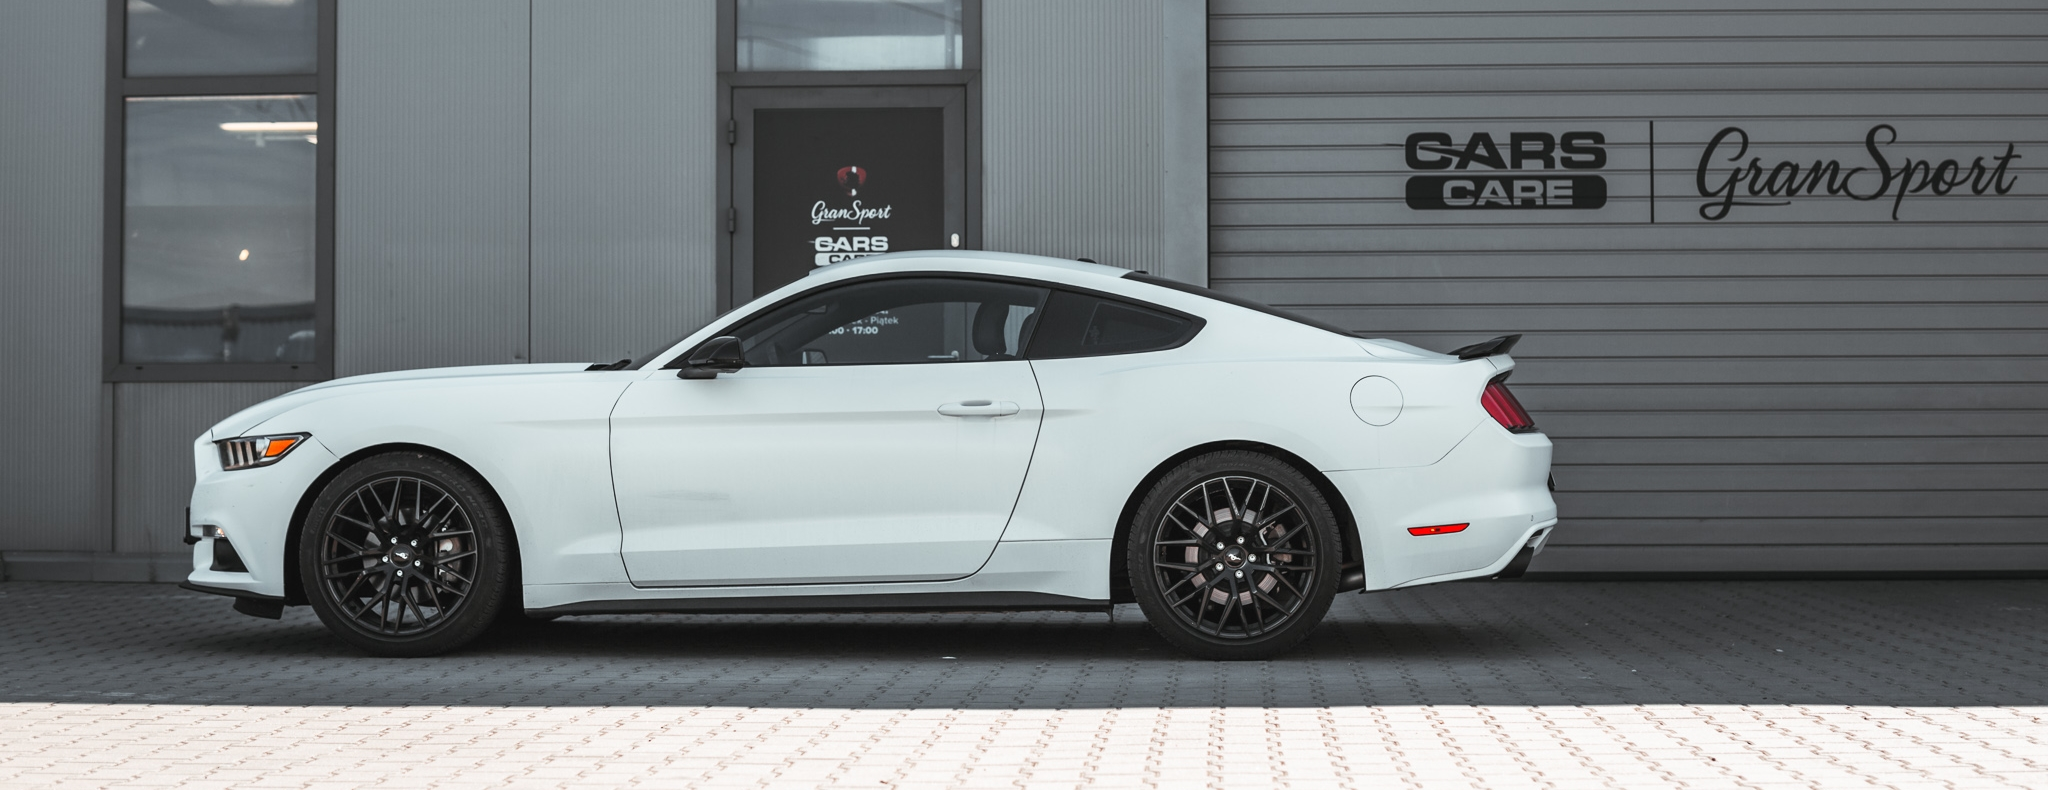 Ford Mustang Remus